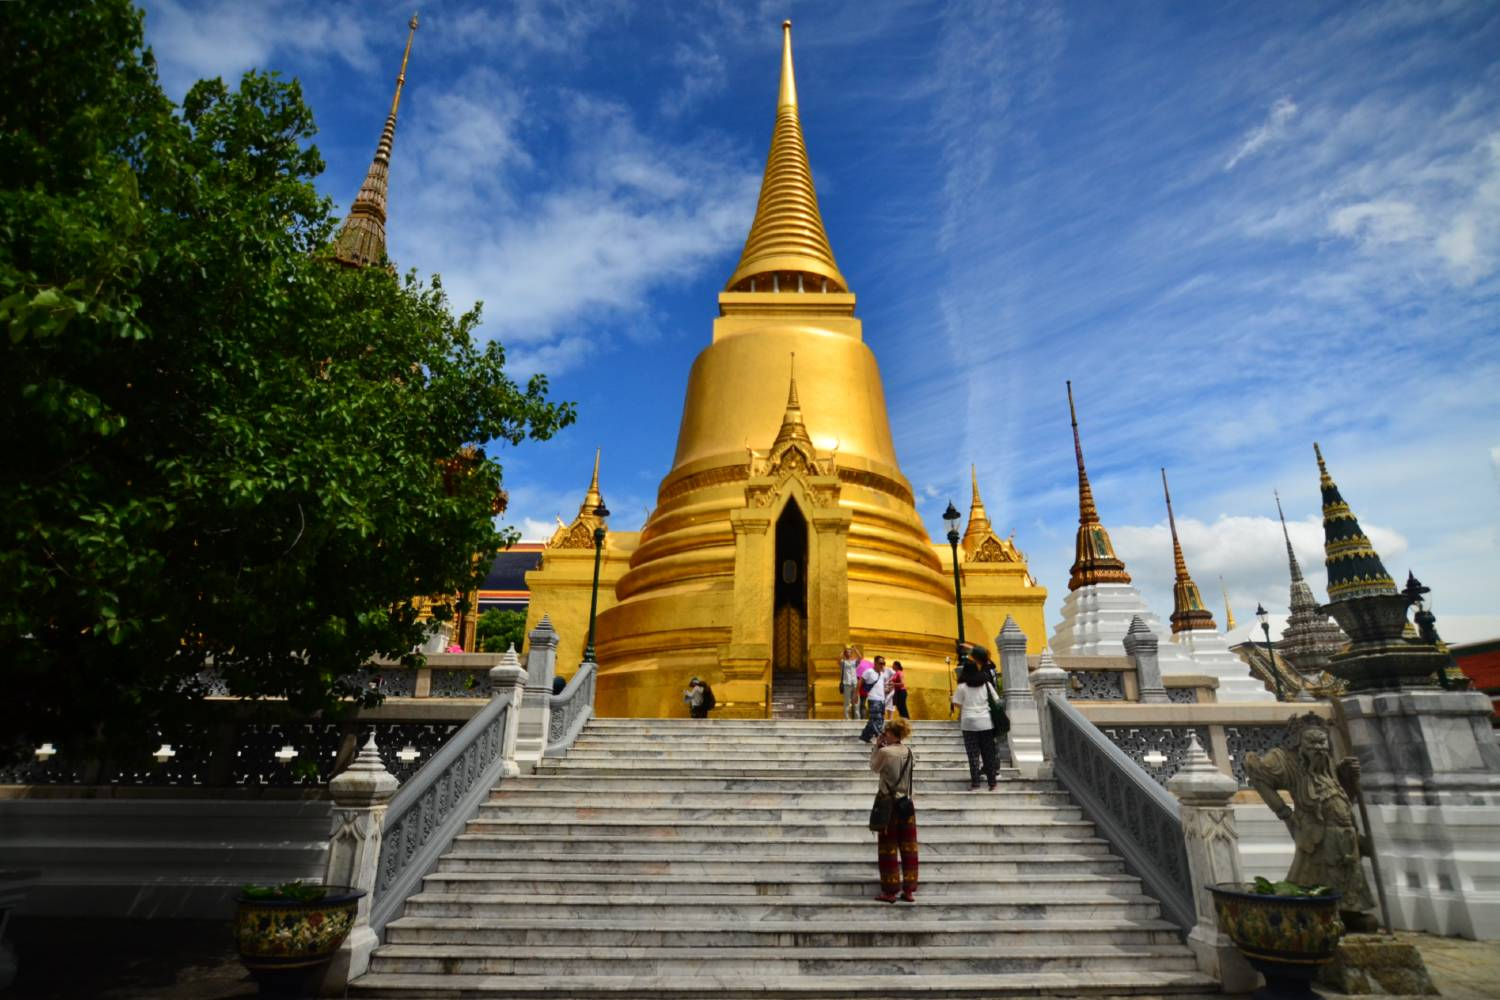 The Phra Siratana Chedi on the grounds of the Grand Palace in Bangkok, Thailand